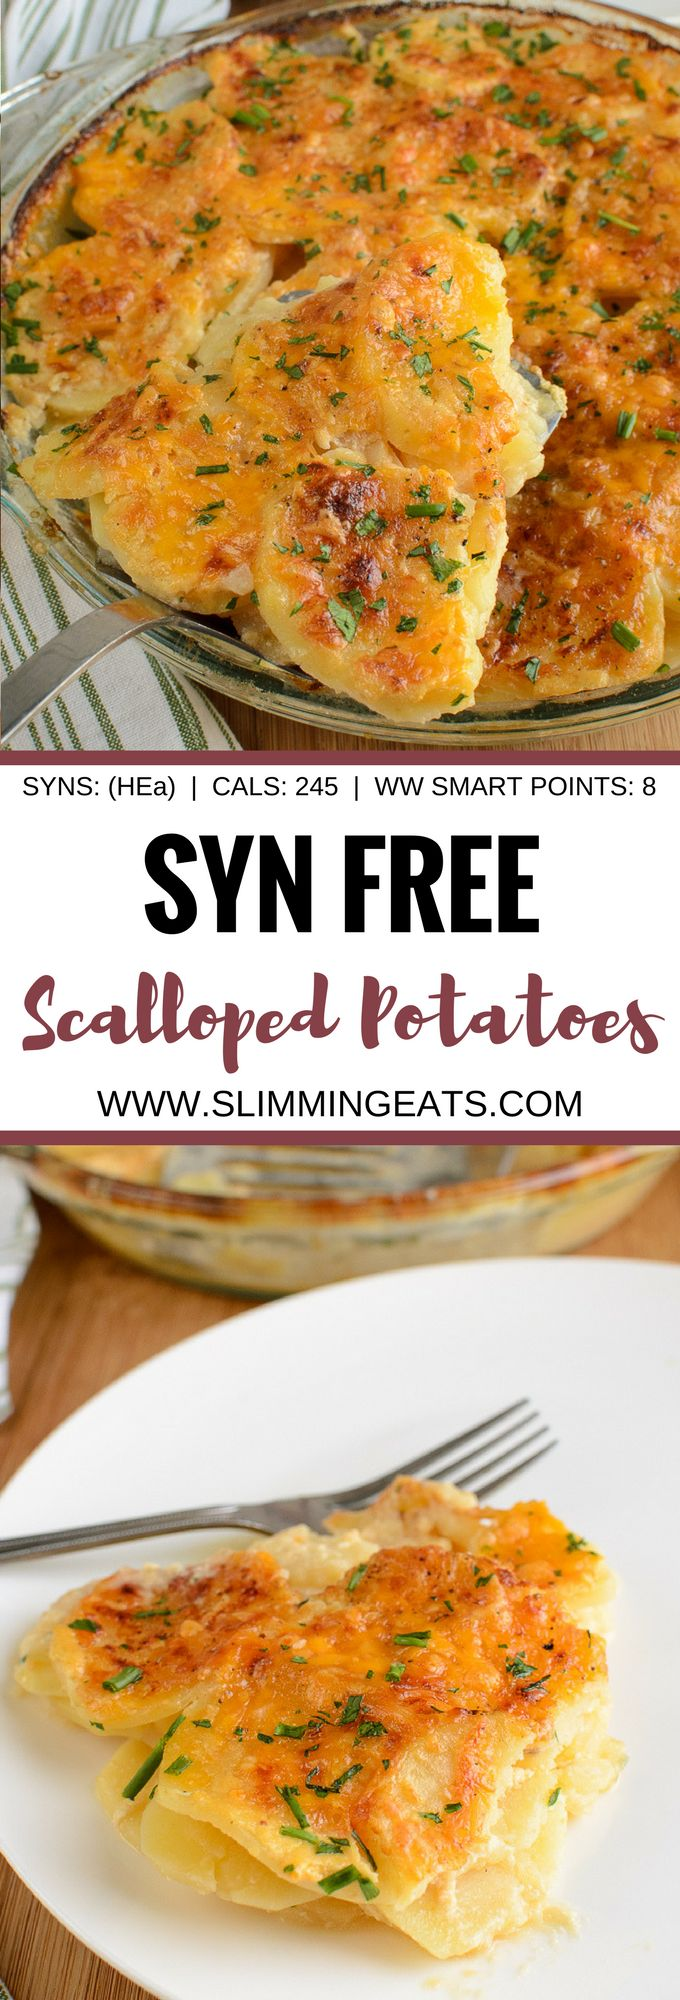 Slimming Eats Syn Free Scalloped Potatoes - gluten free, vegetarian, Slimming World and Weight Watchers friendly